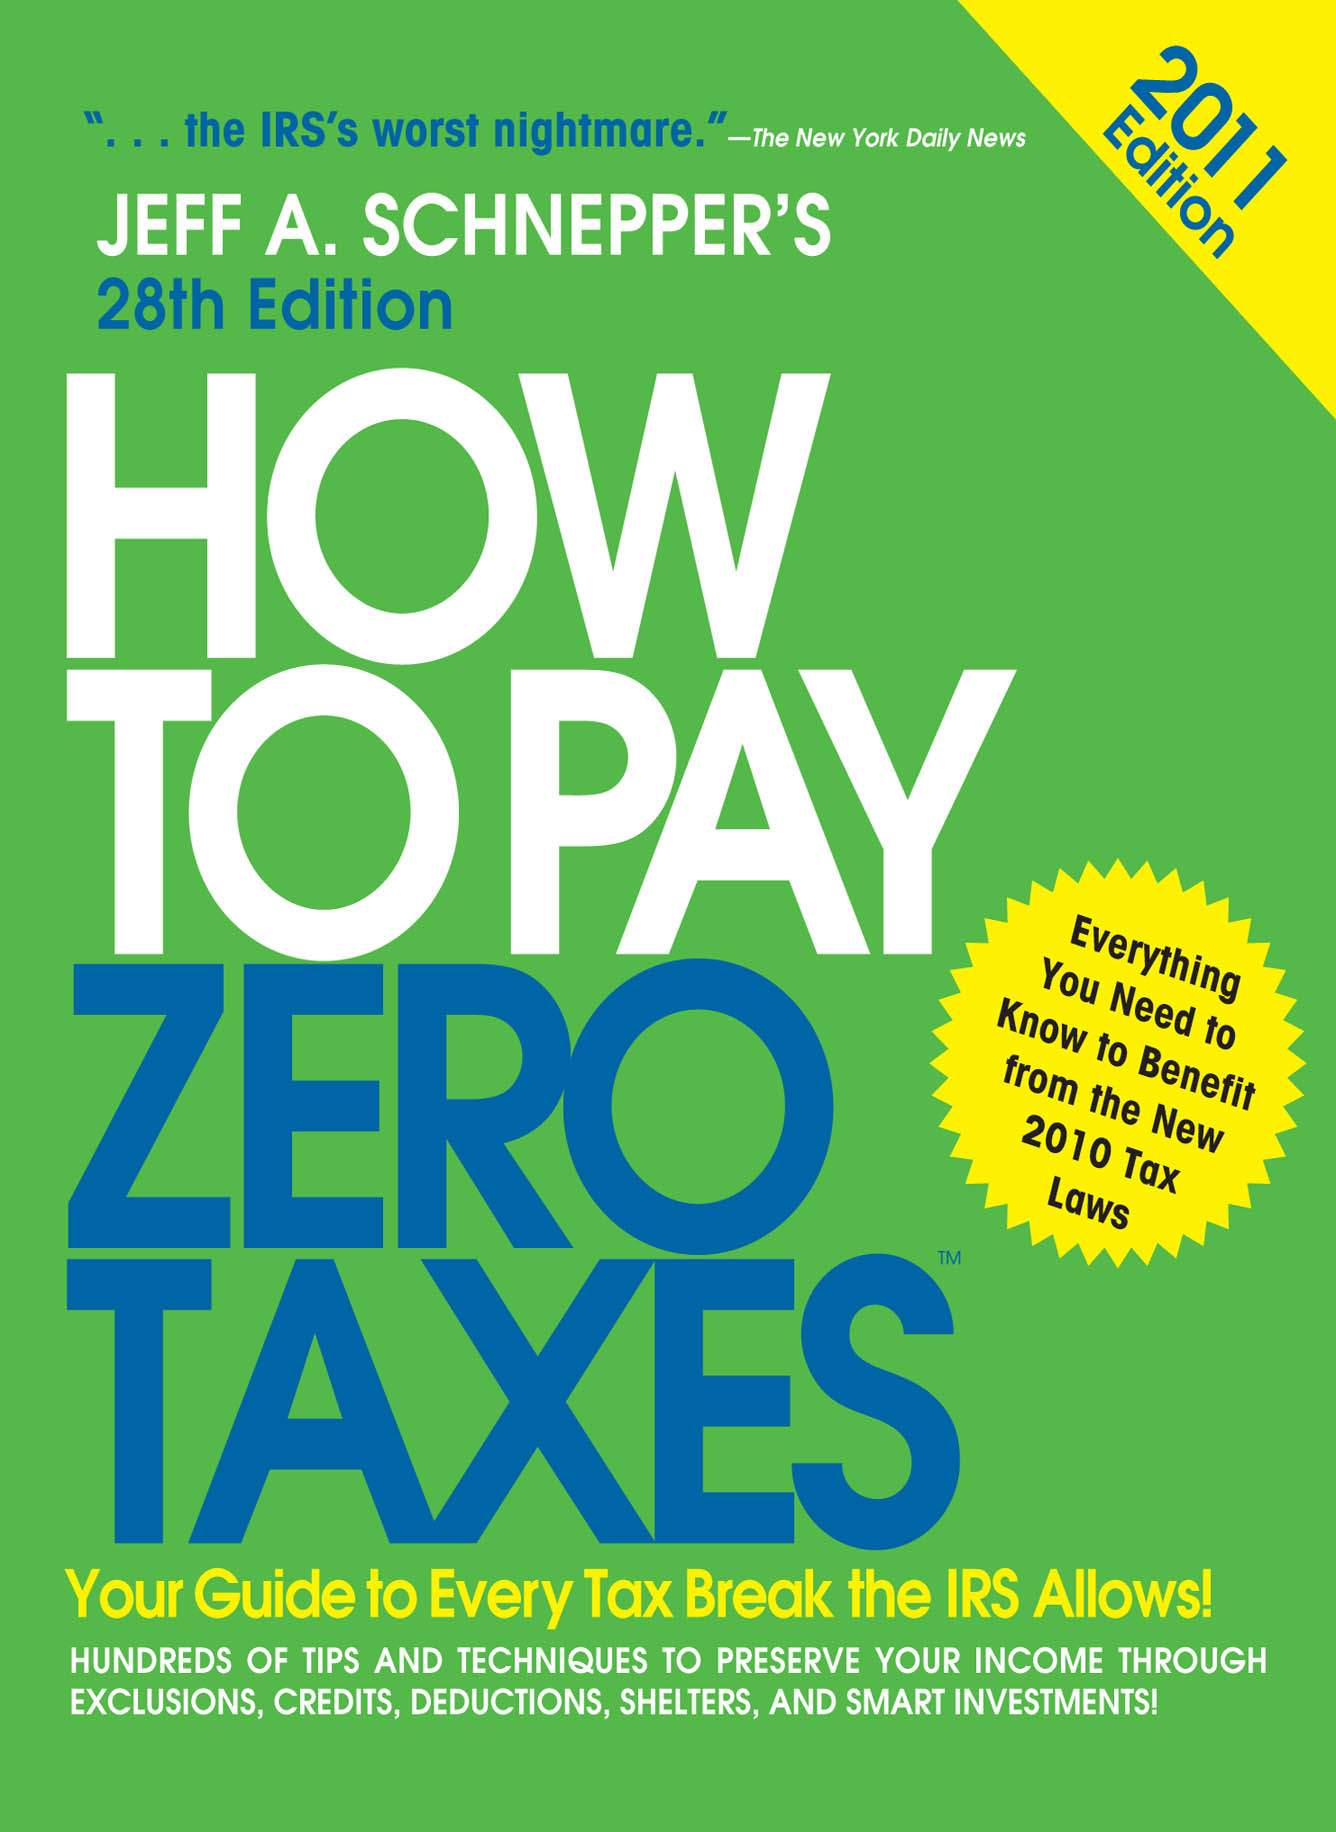 Download Ebook How to Pay Zero Taxes 2011: Your Guide to Every Tax Break the IRS Allows! by Jeff A. Schnepper Pdf